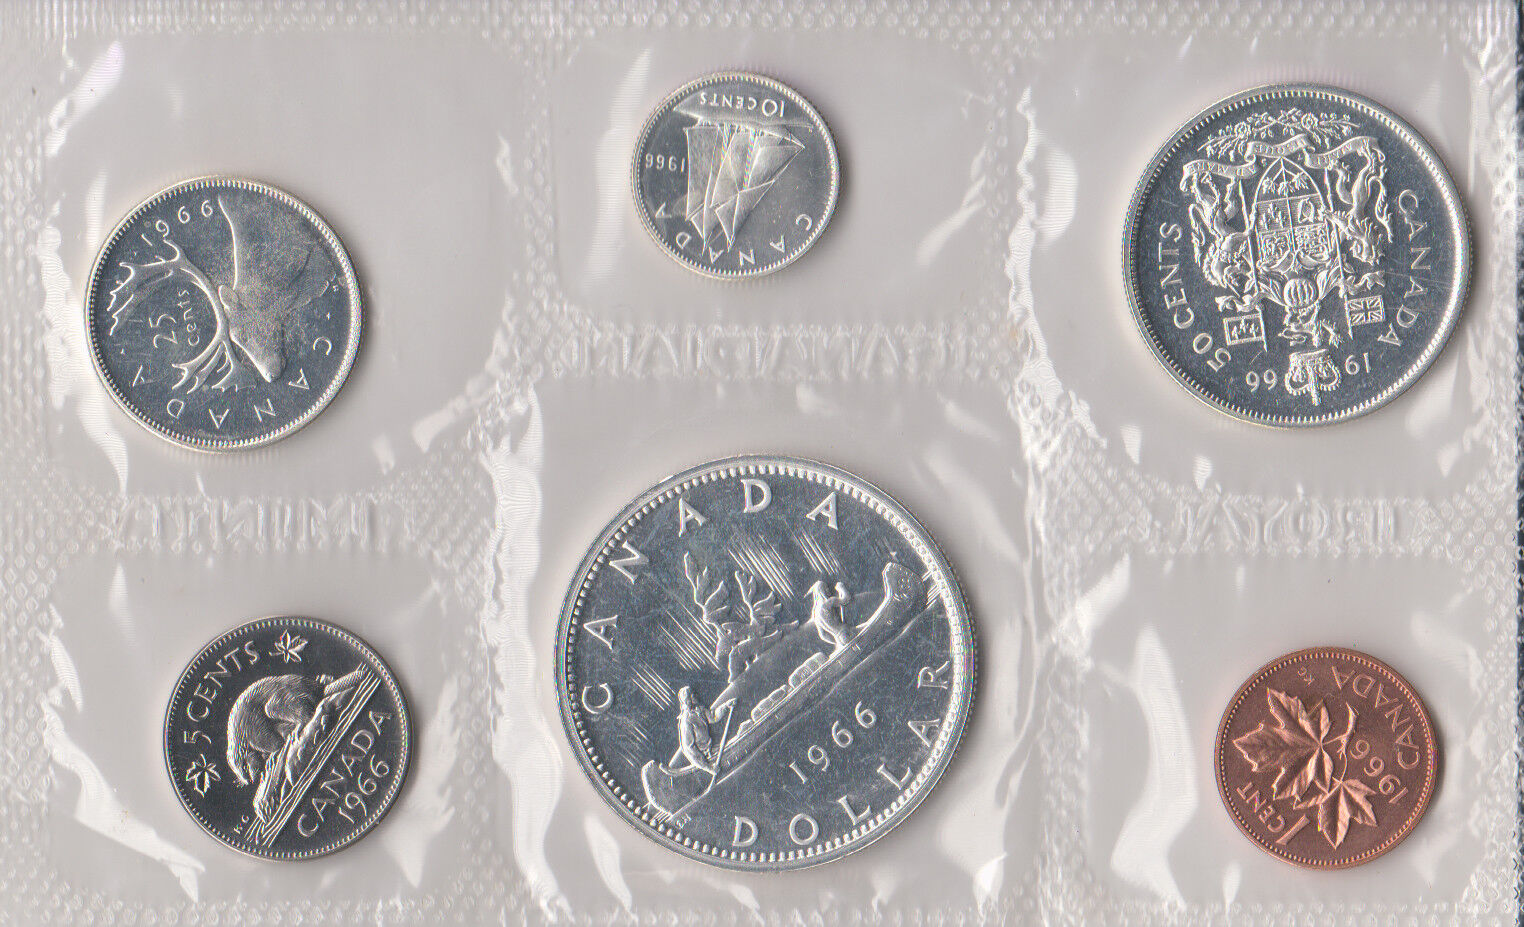 Mint Set Details About 1966 Canada Sealed Proof Like Mint Set 6 Coins Total 4 Silver Coins 80 800